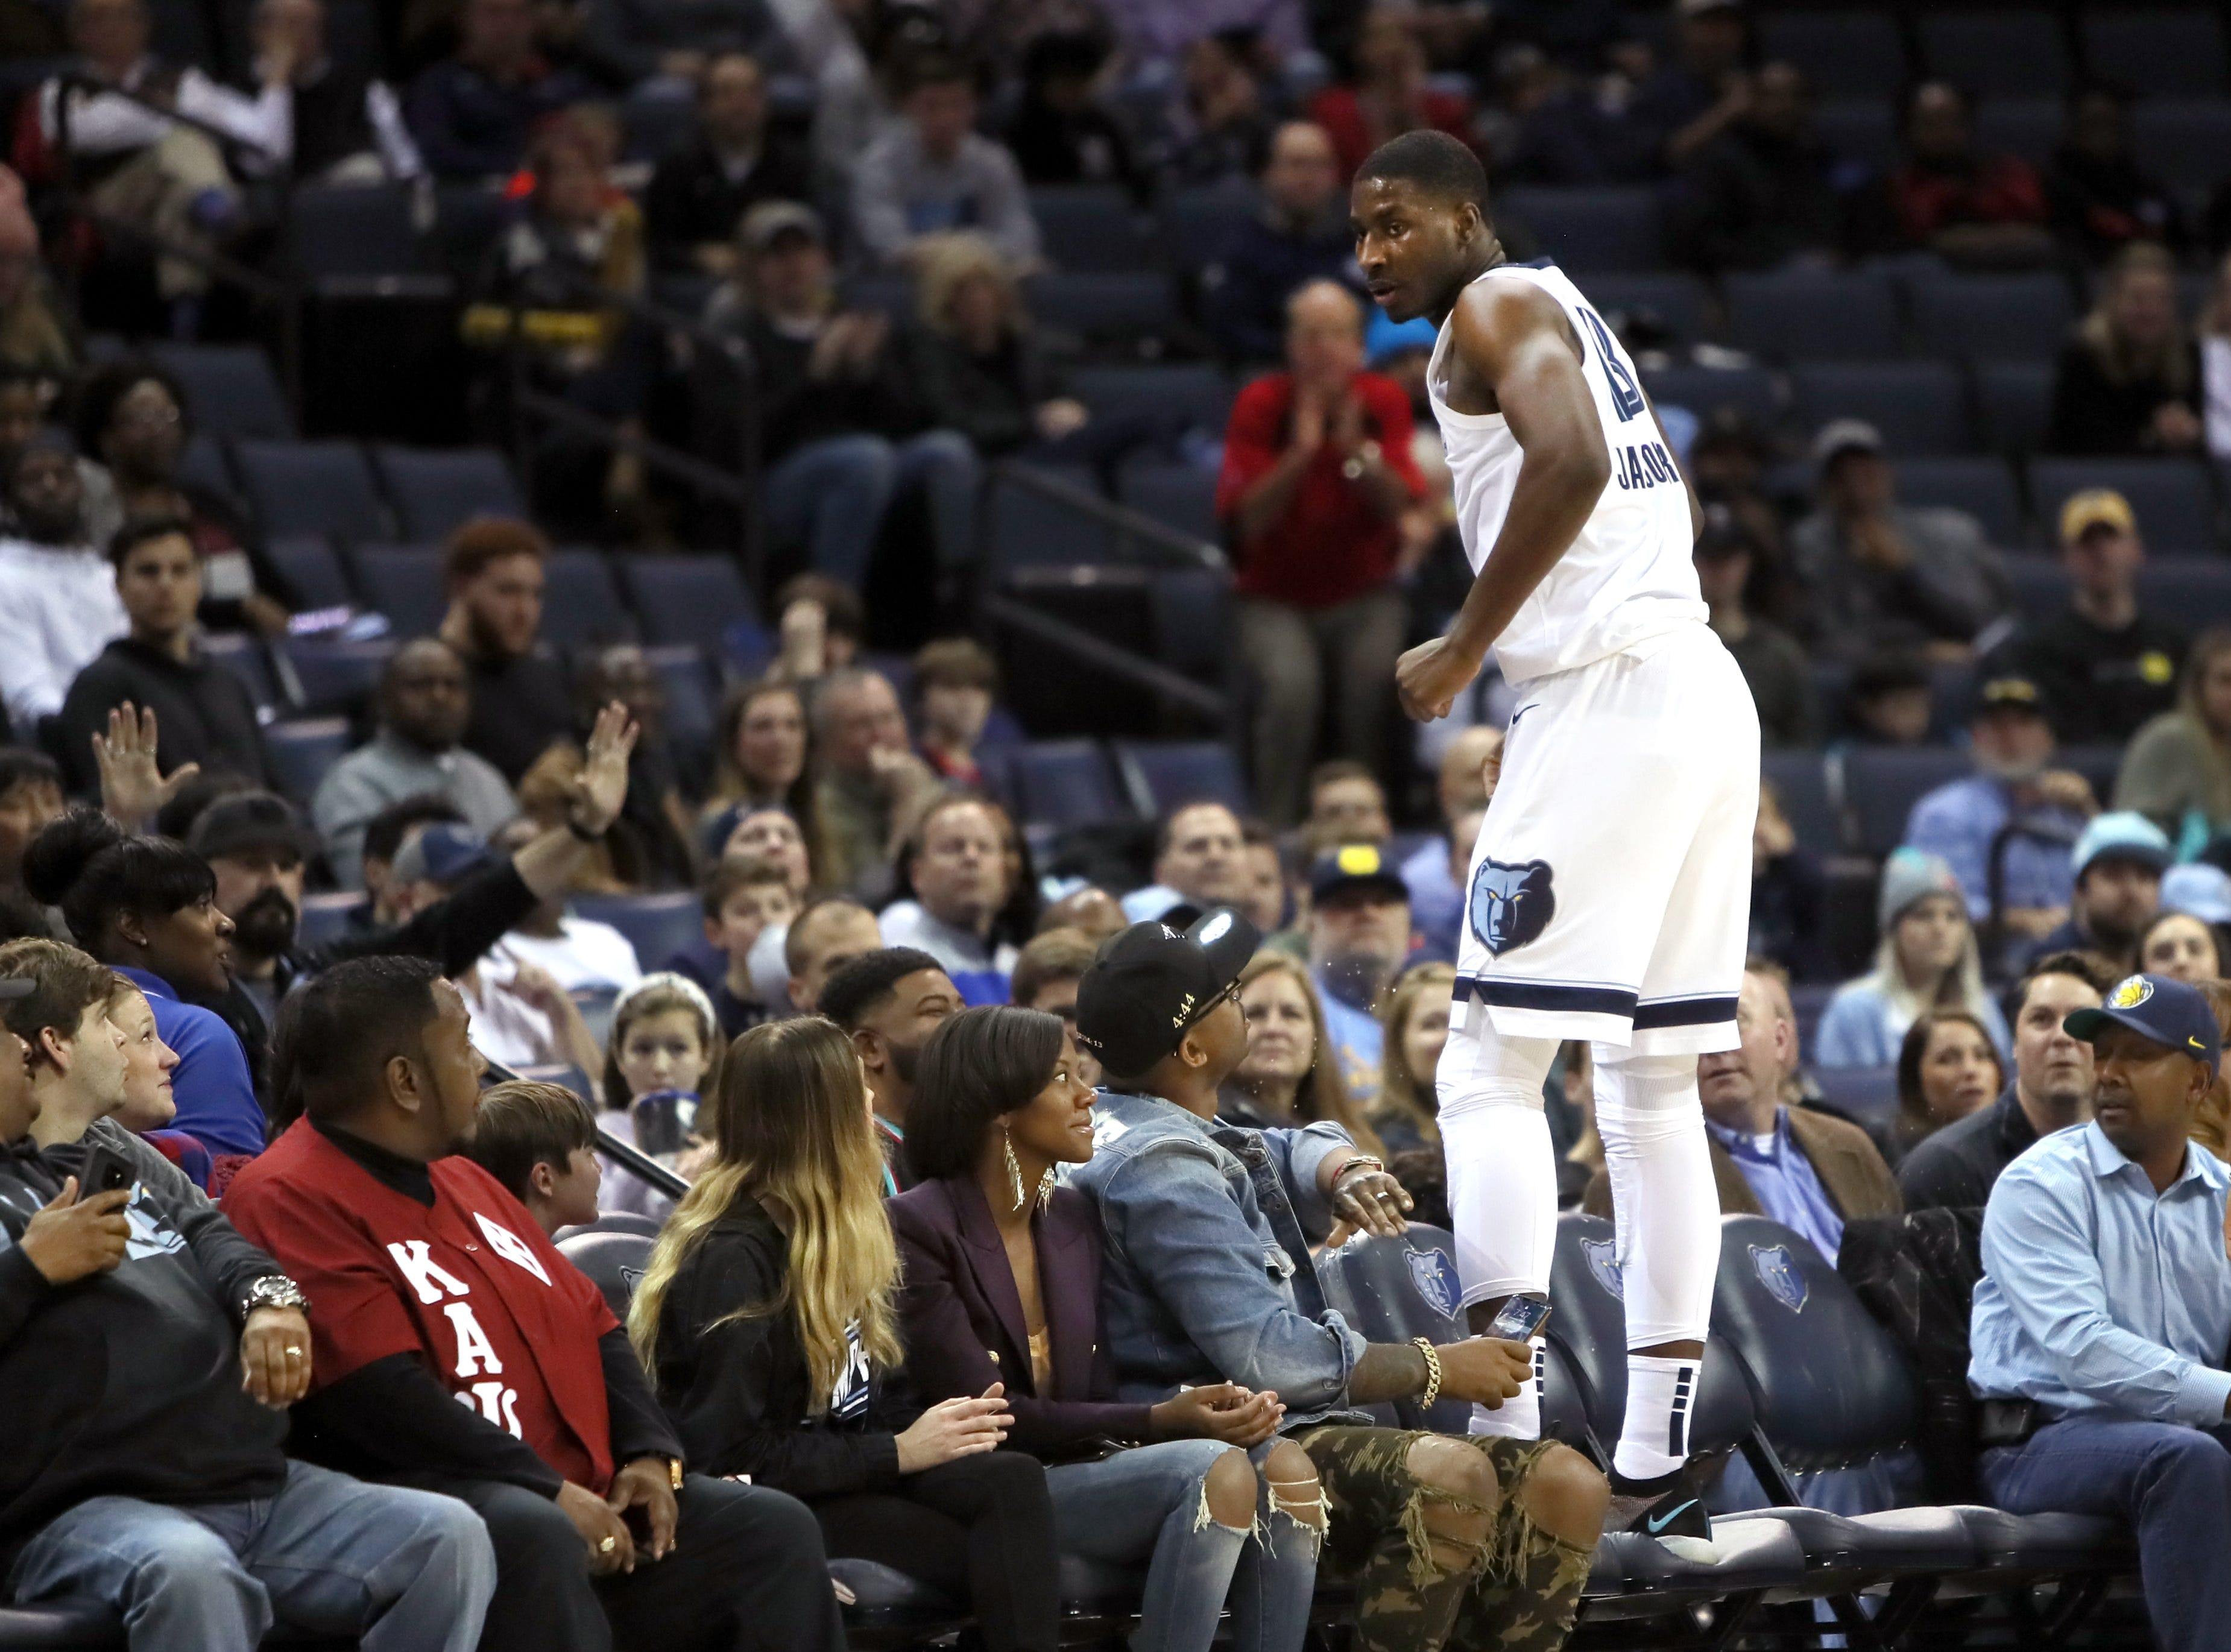 Memphis Grizzlies forward Jaren Jackson Jr. stands in the crowd after chasing down a lose ball against the Detroit Pistons during their game at the FedExForum on Wednesday, January 2, 2019.